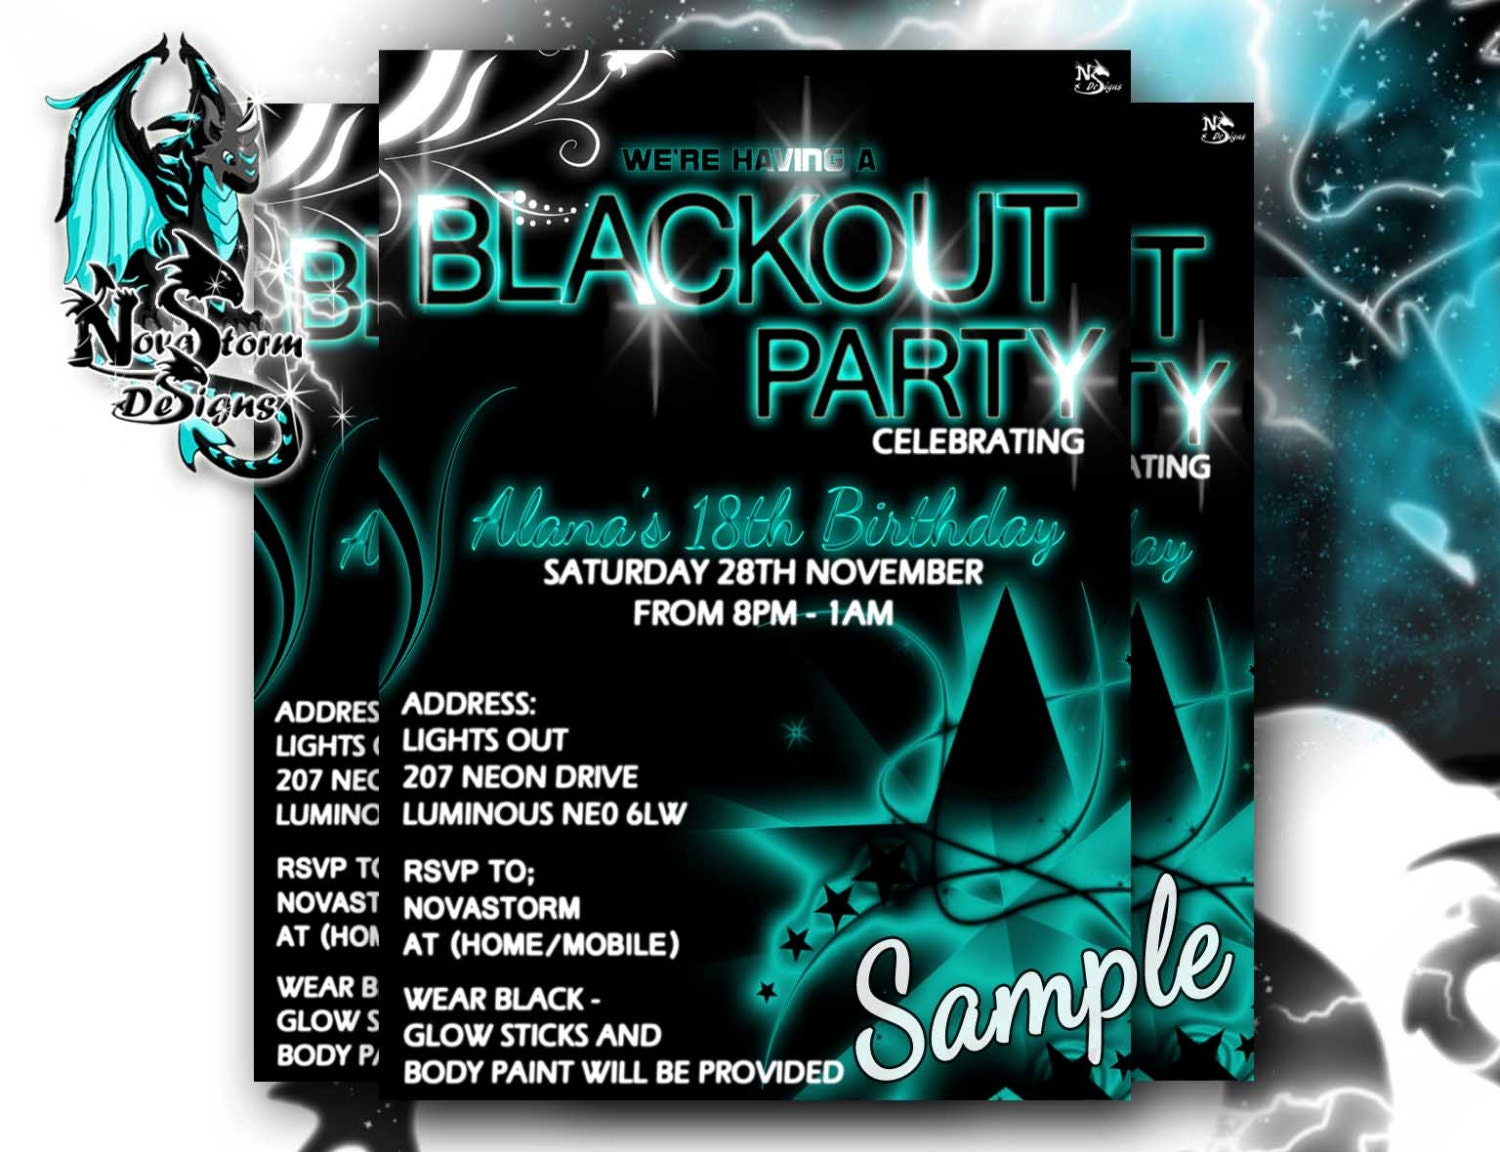 Blackout Party Invitations UV Glow Dance Party Blacklight – Dance Party Invites